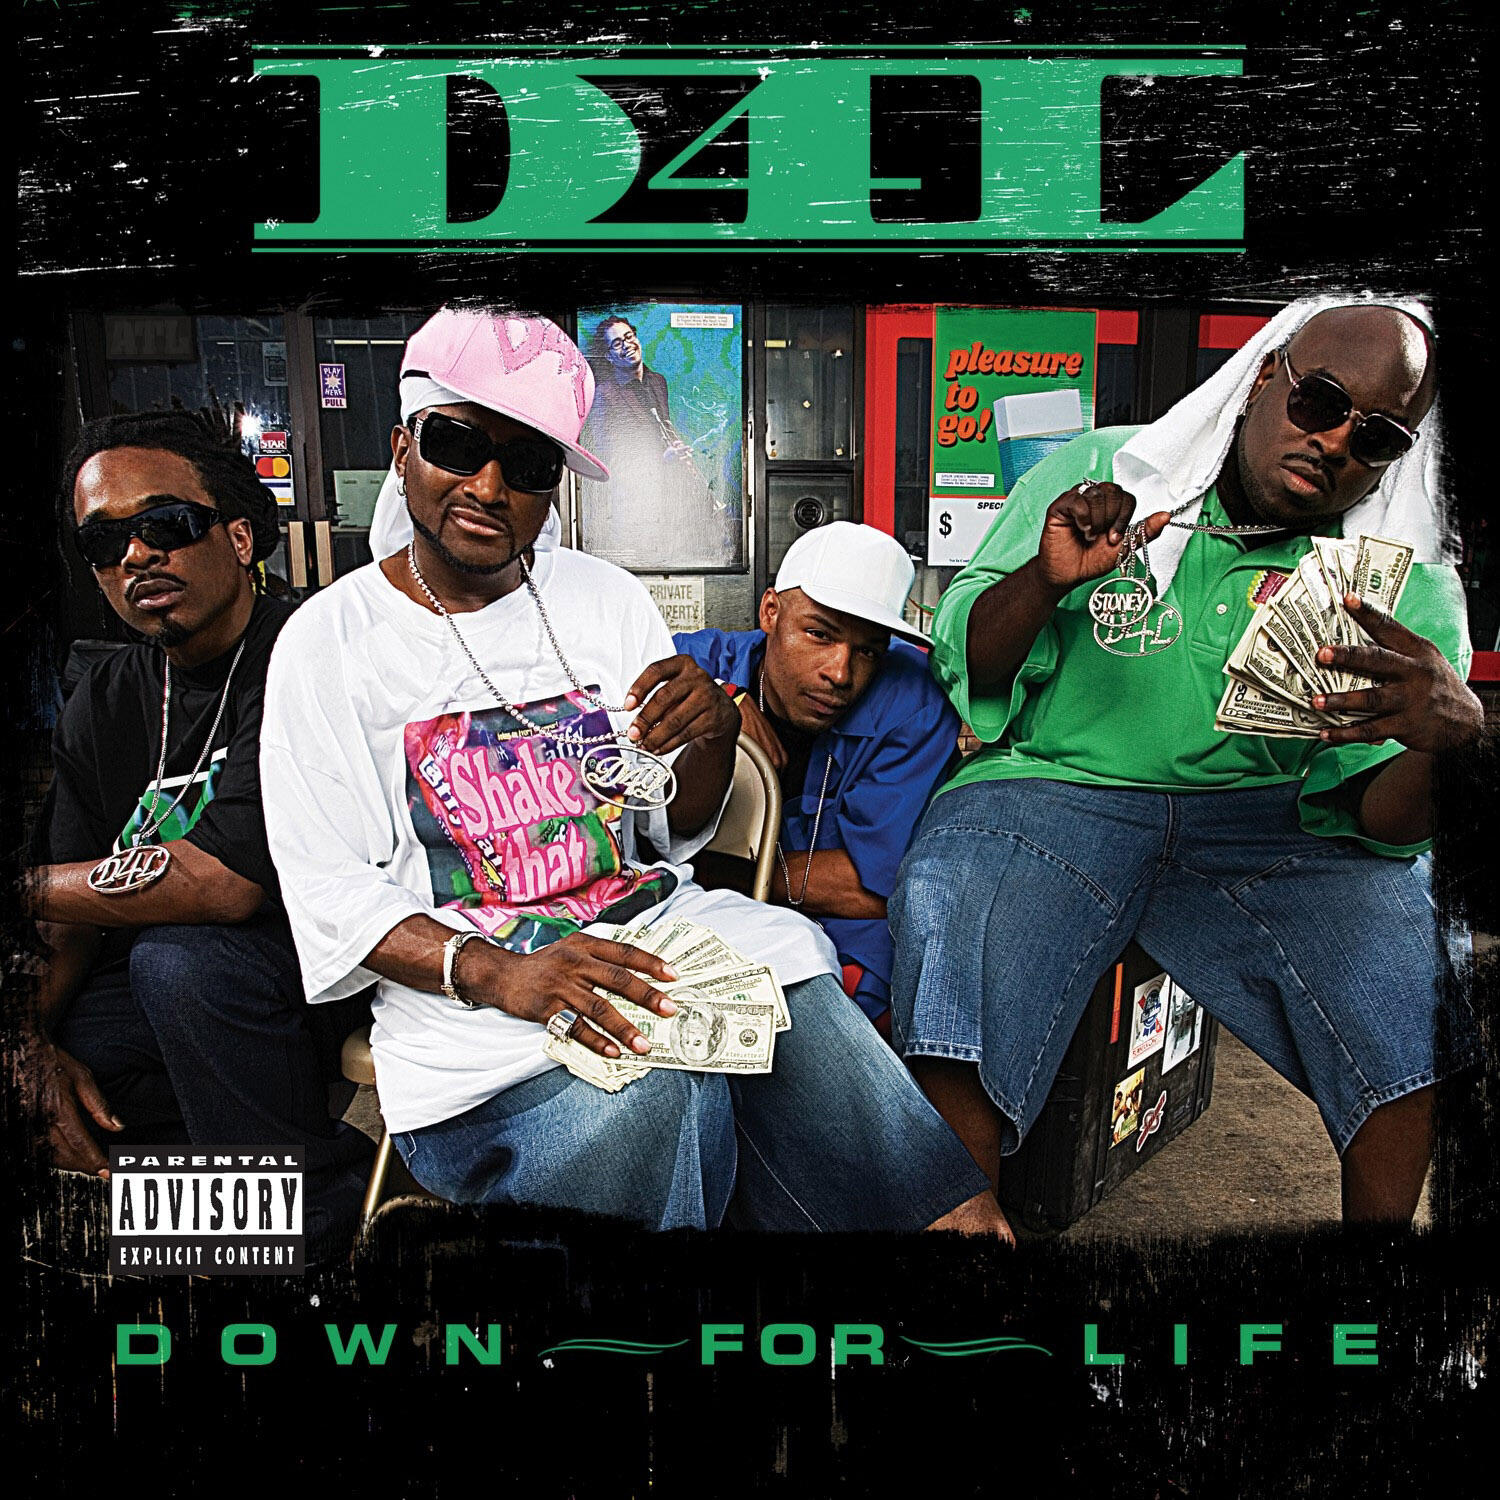 Ive heard some say that d4l killed hip hop